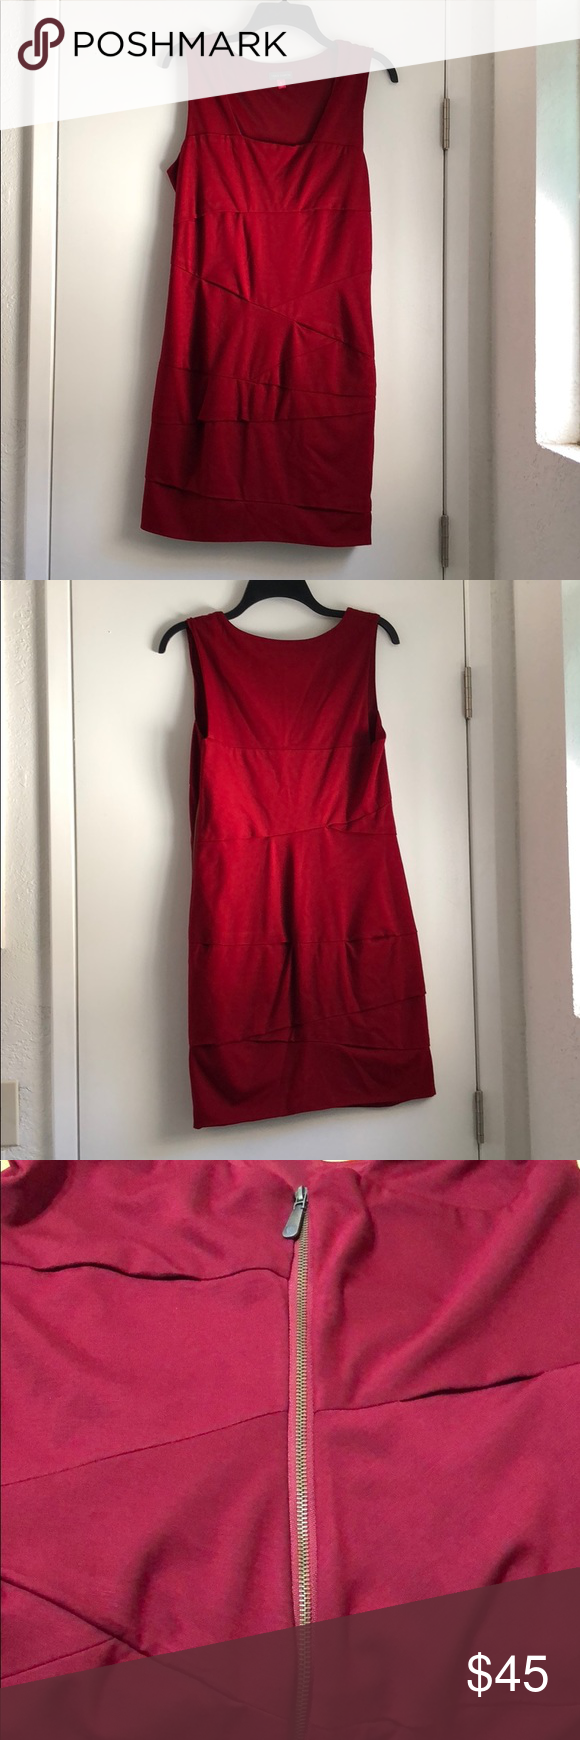 Vince Camuto Wear Red Dress Wearing Red Clothes Design [ 1740 x 580 Pixel ]